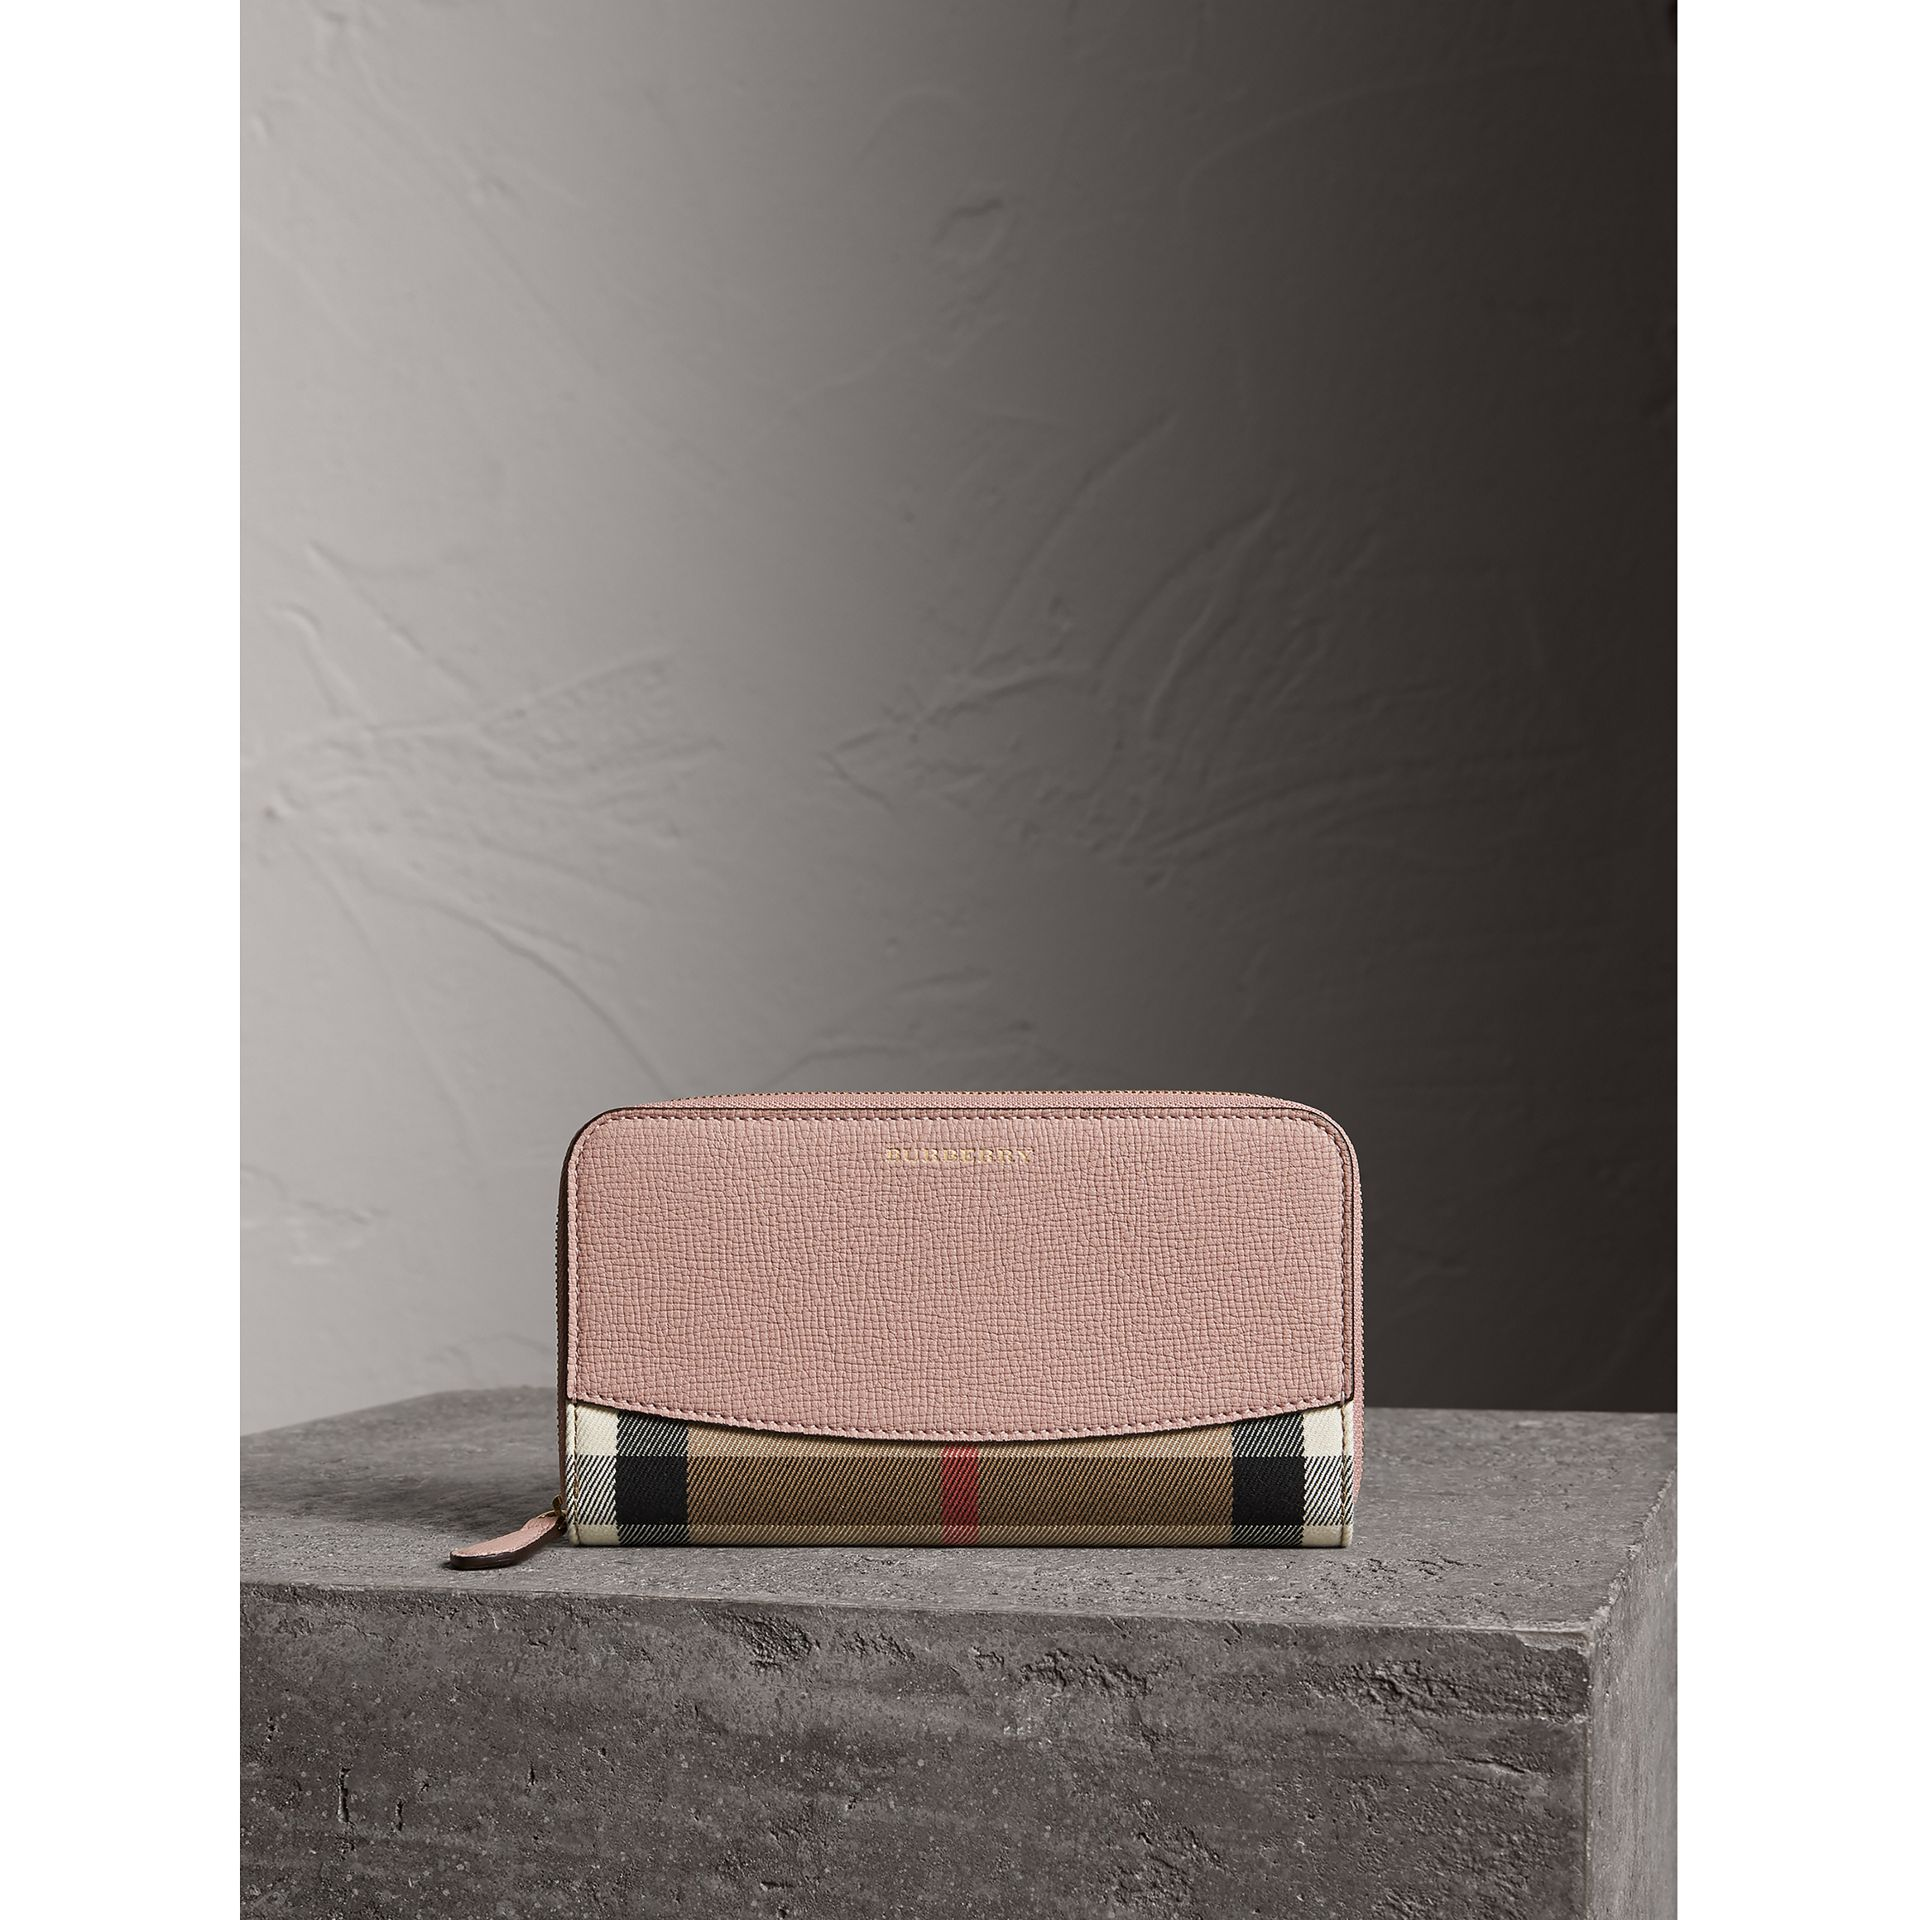 House Check and Leather Ziparound Wallet in Pale Orchid - Women | Burberry United Kingdom - gallery image 5